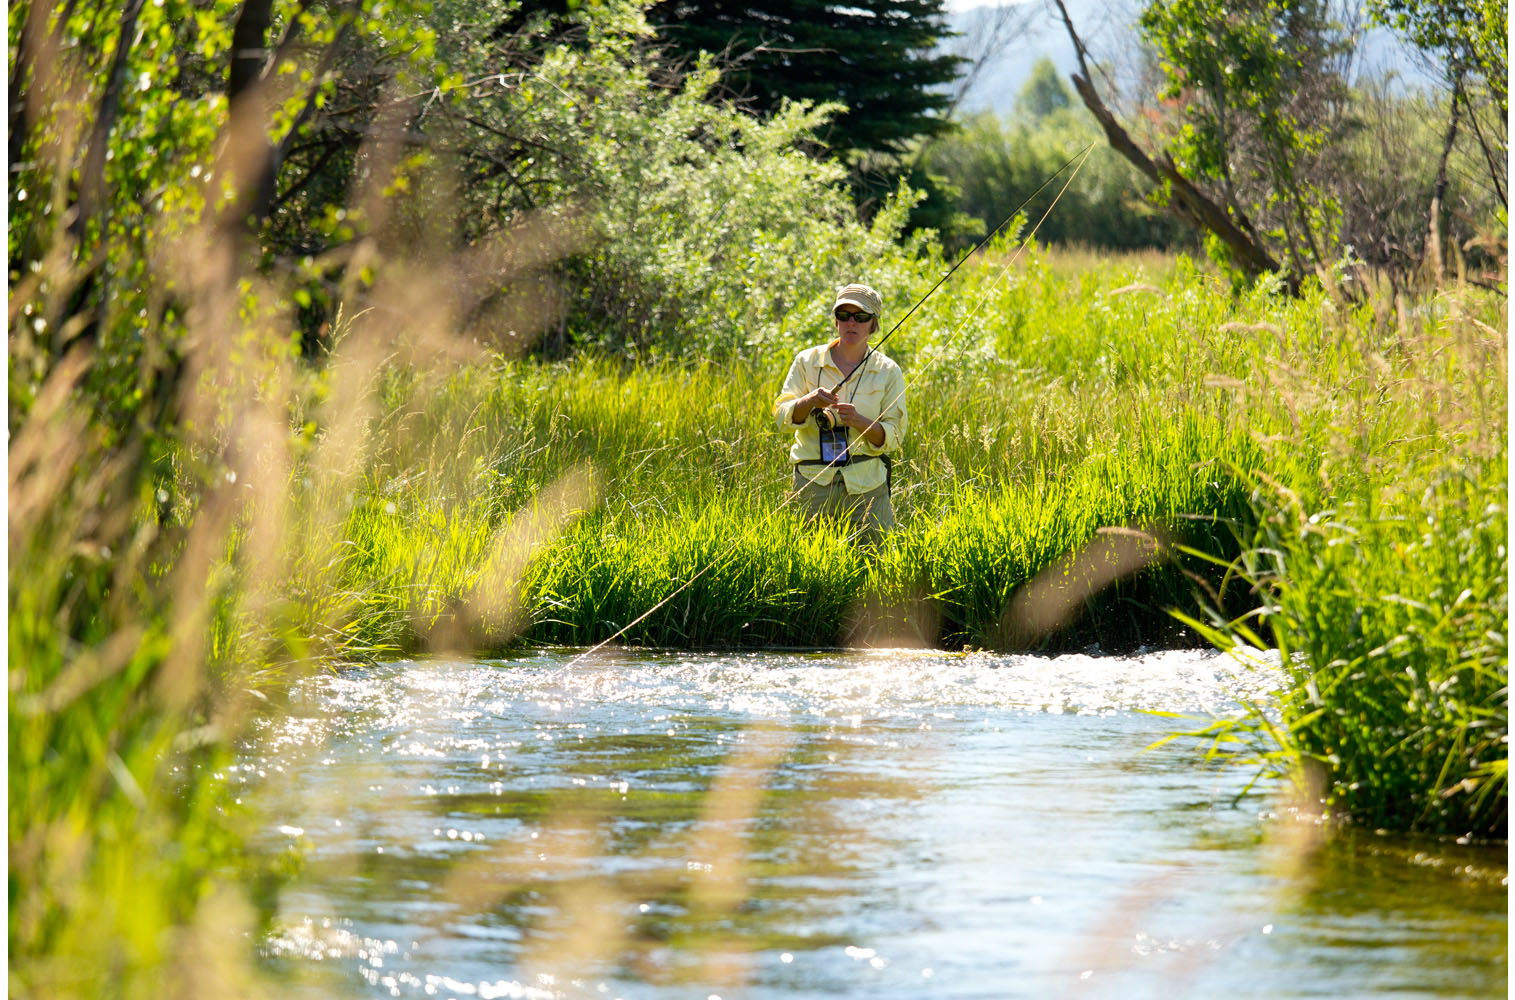 lifestyle_matera_fly_fishing_colorado_dff4-192.jpg